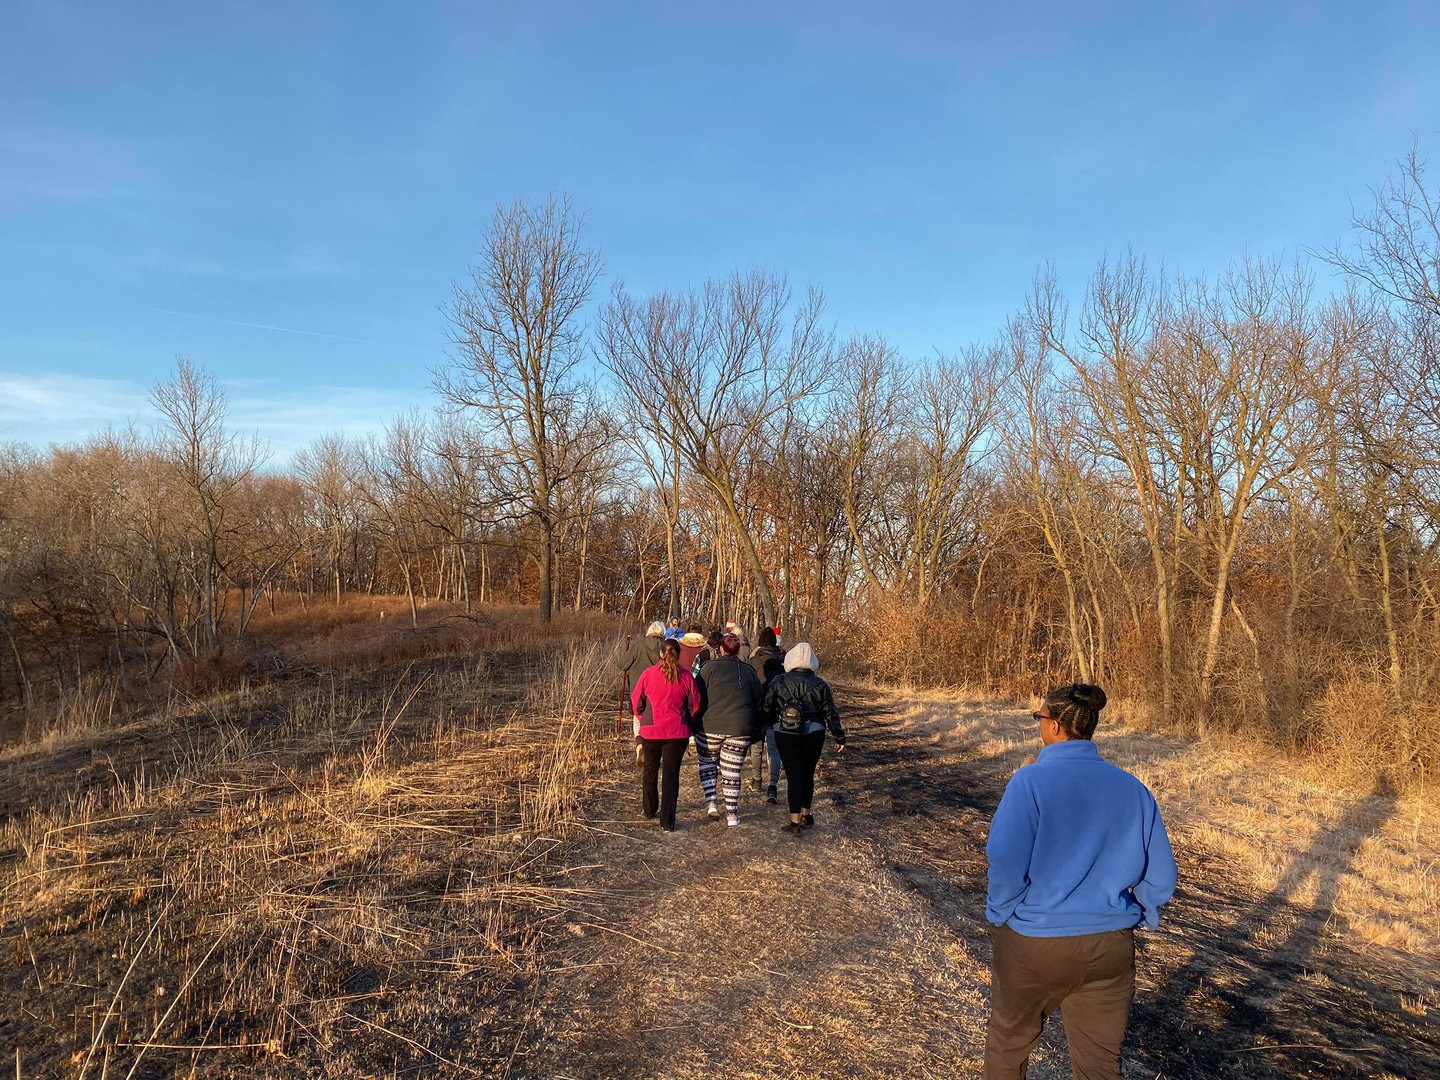 Students on wooded trail